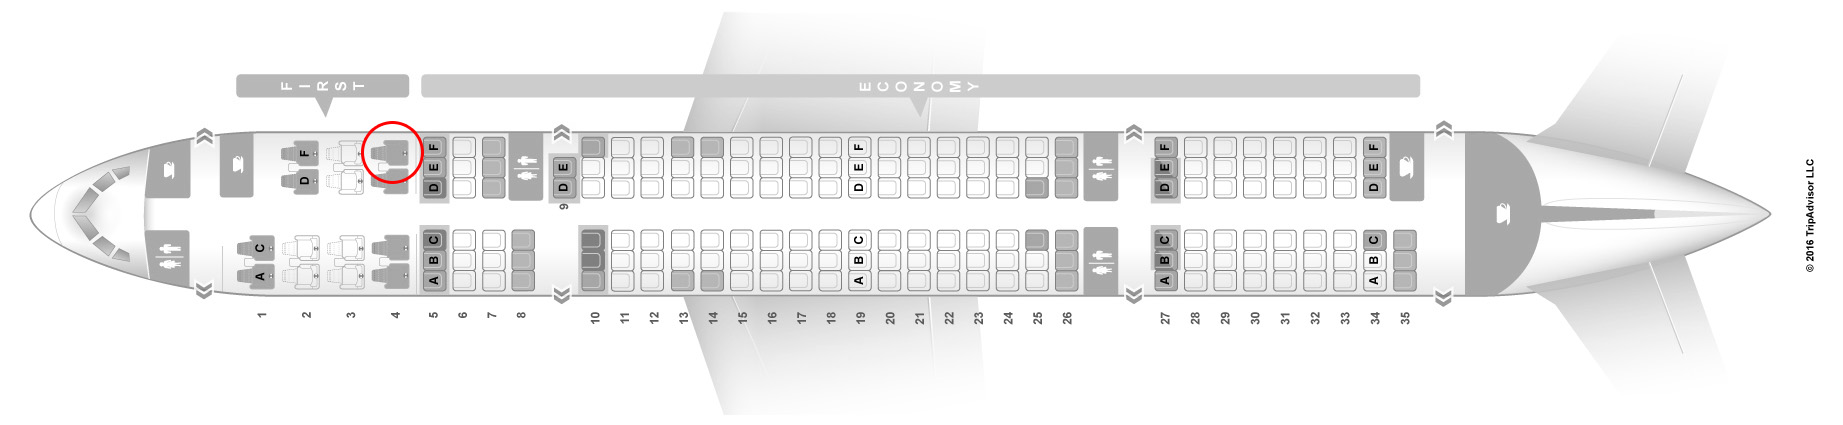 American Airlines 757 seat map